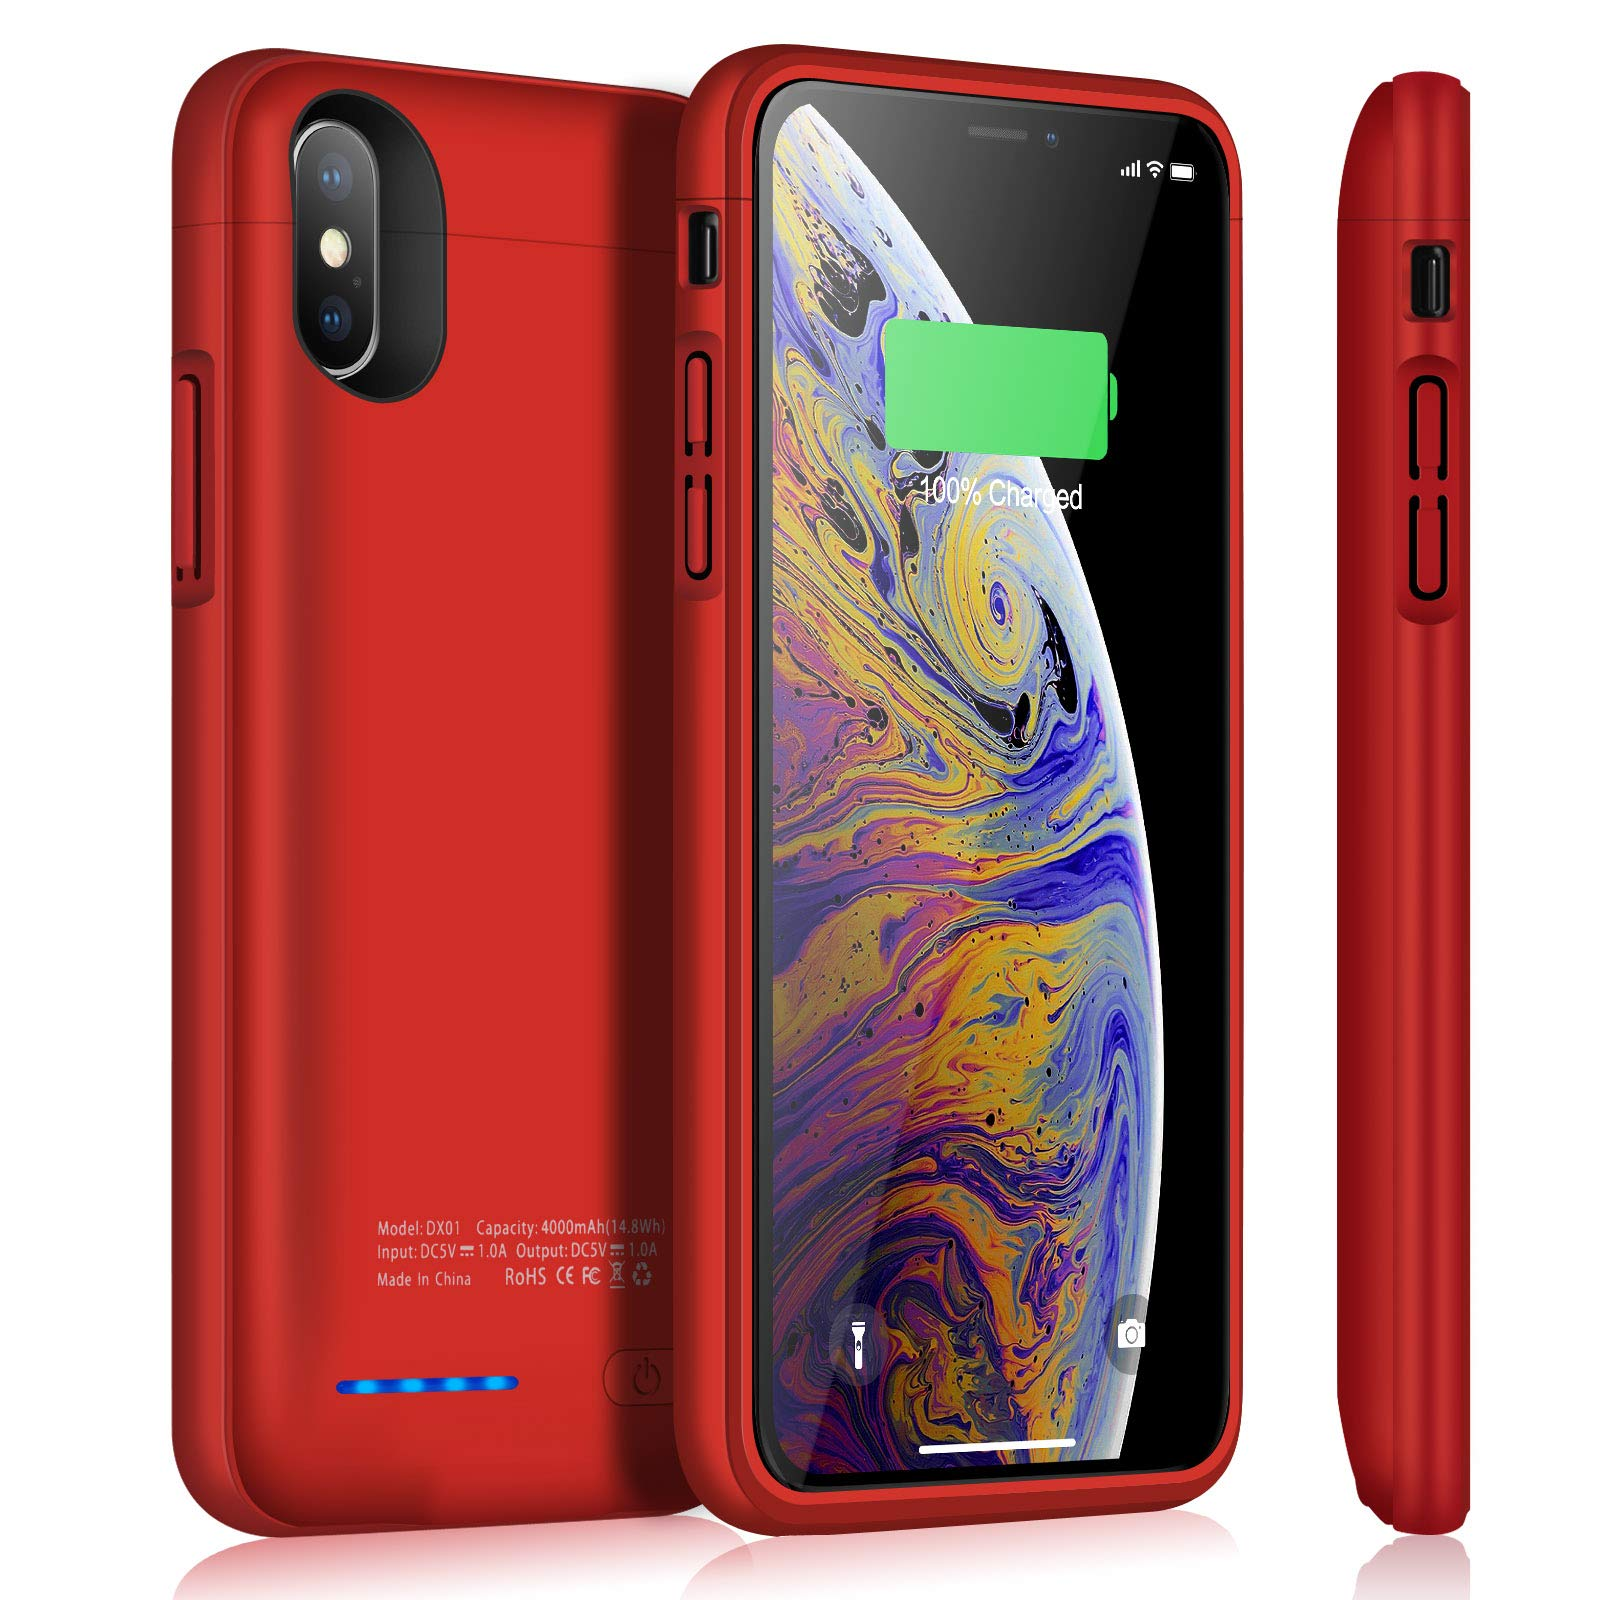 Funda Con Bateria de 4000mah para Apple Iphone X/Xs TAYUZH [7Q9LZ61N]